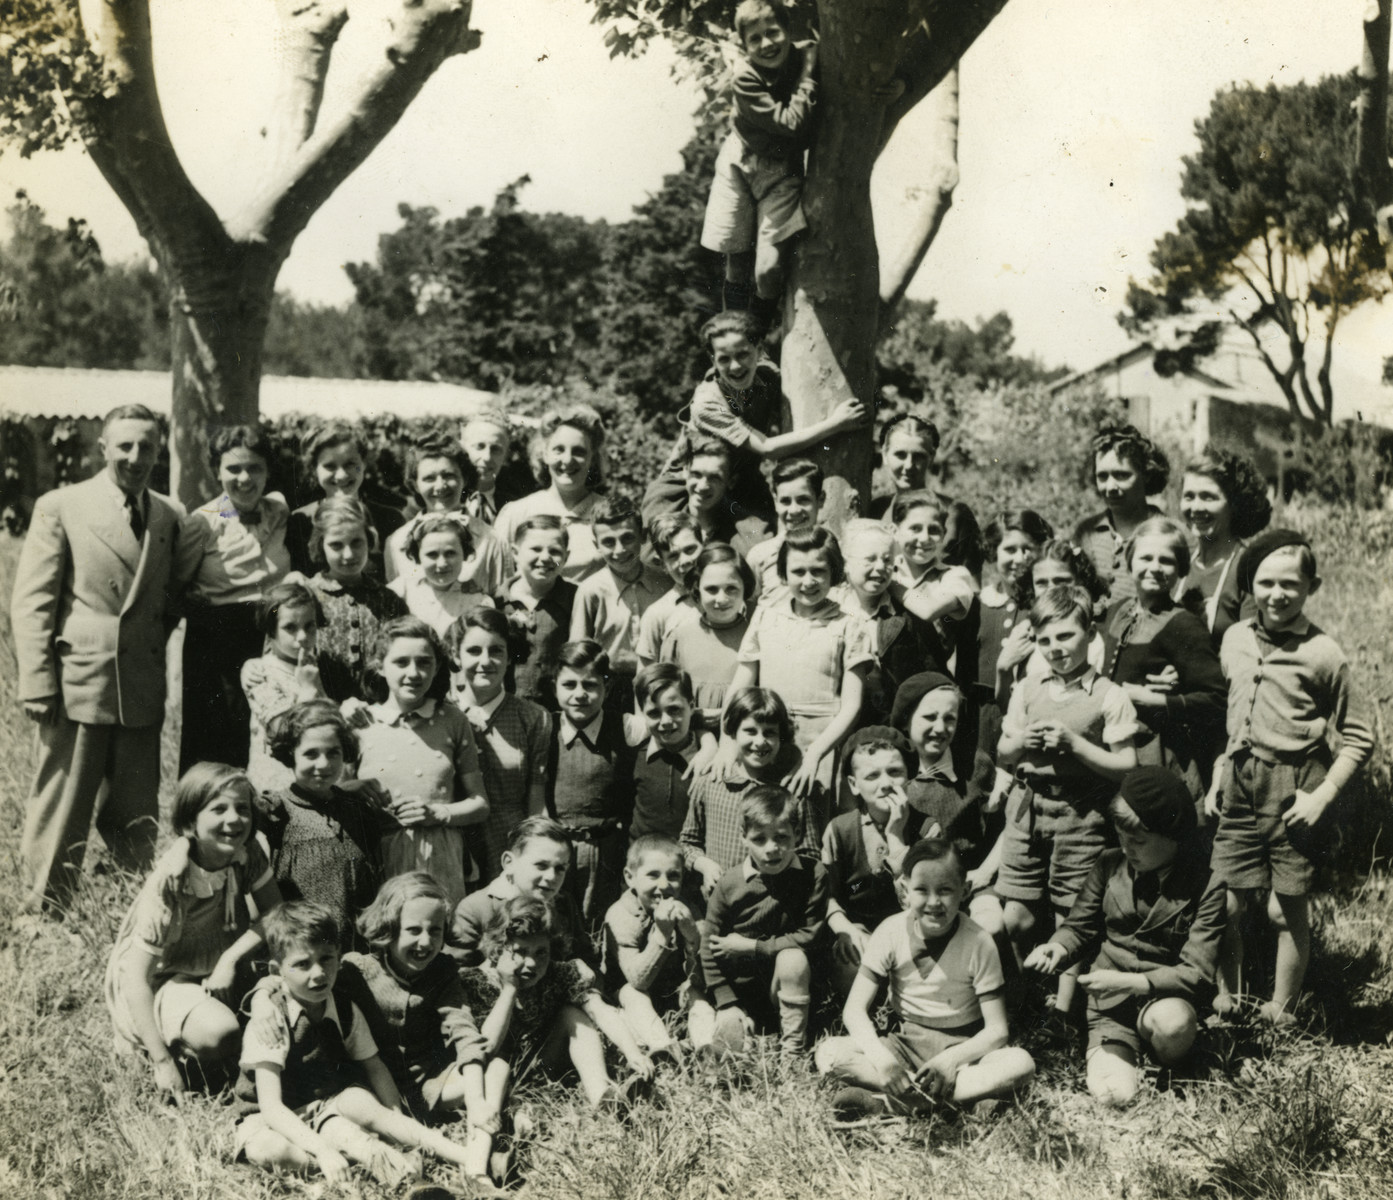 Group portrait of Jewish children in Marseilles under the care of UGIF who are preparing to leave for the United States.  Among those pictured is Jolana Schonbrun, standing in the third row, third from the left with a ribbon in her hair.